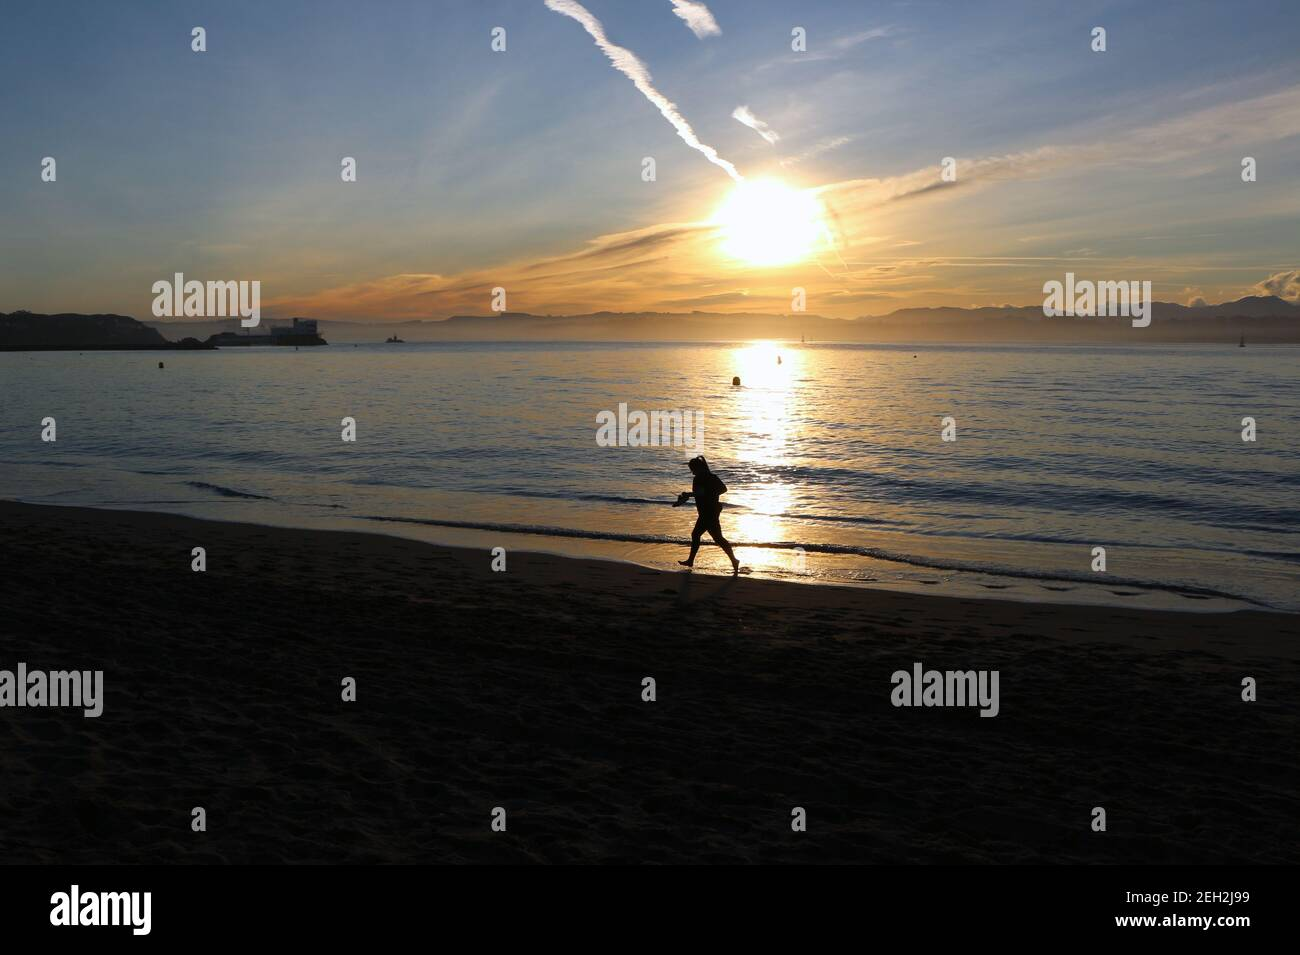 woman-running-in-the-surf-holding-her-shoes-in-her-hands-on-a-sunny-morning-on-the-edge-of-santander-bay-cantabria-spain-winter-2021-2EH2J99.jpg